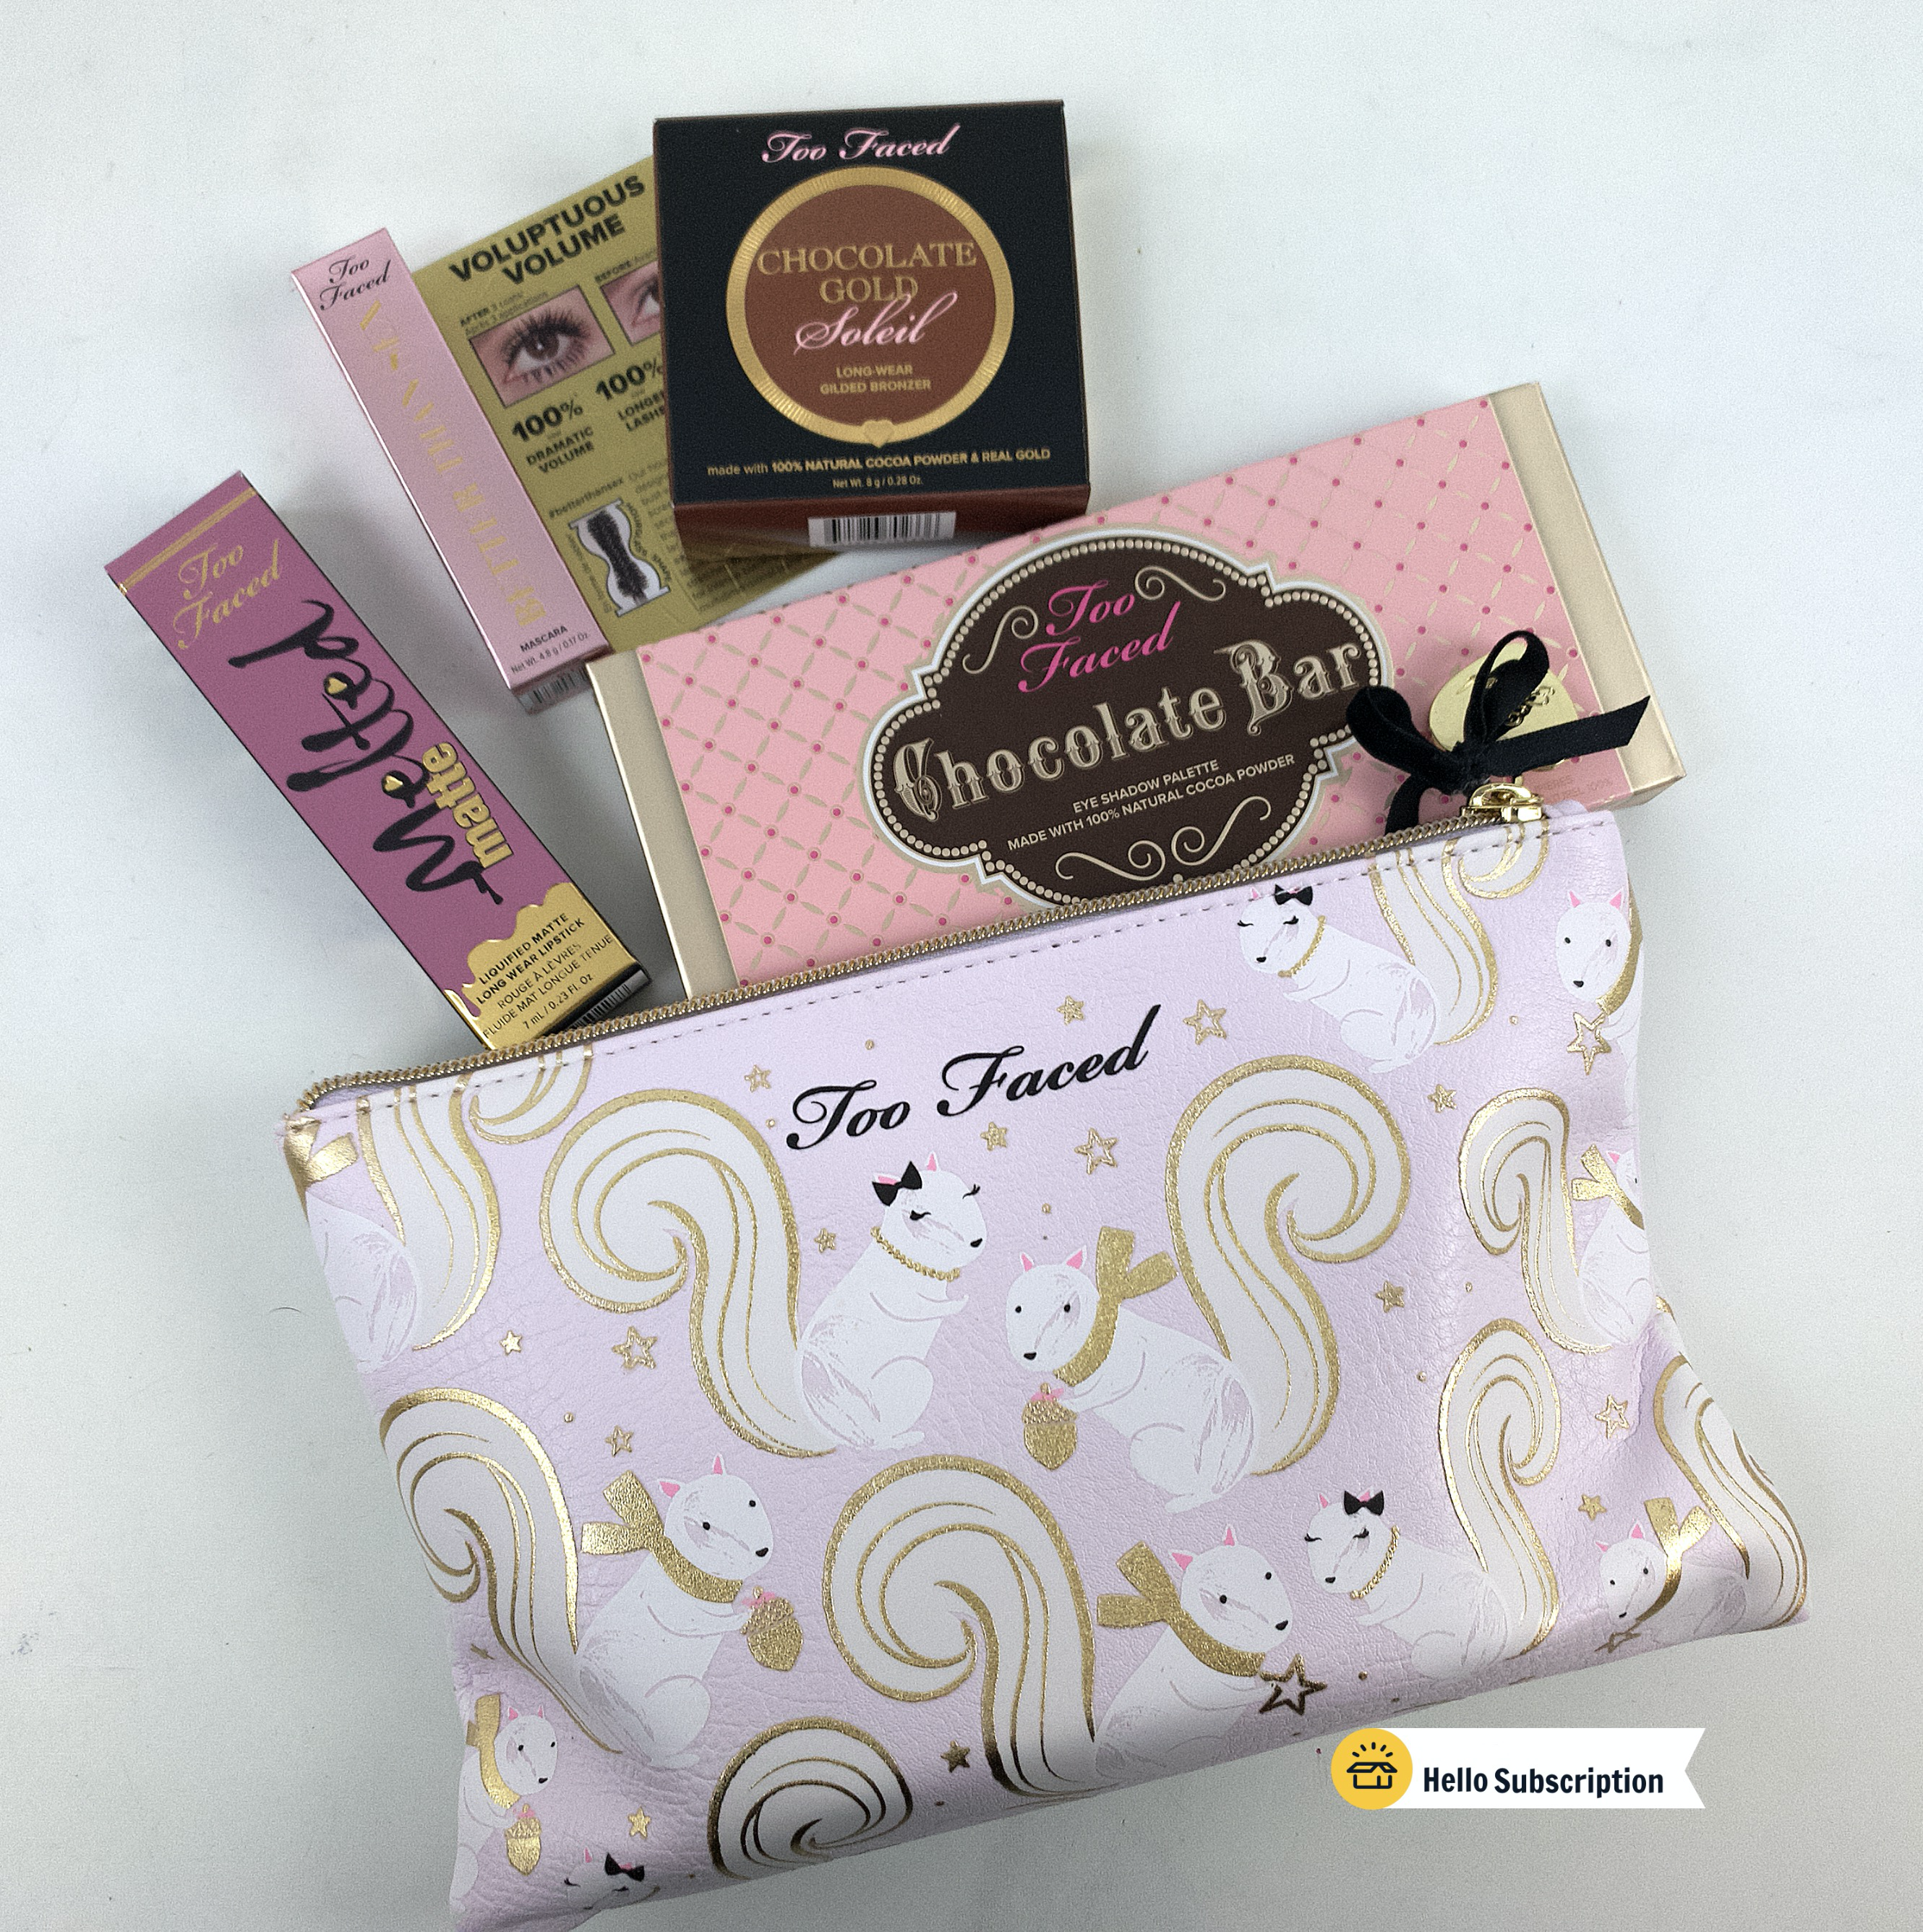 Too Faced Mystery bag, Makeup items, Chocolate gold